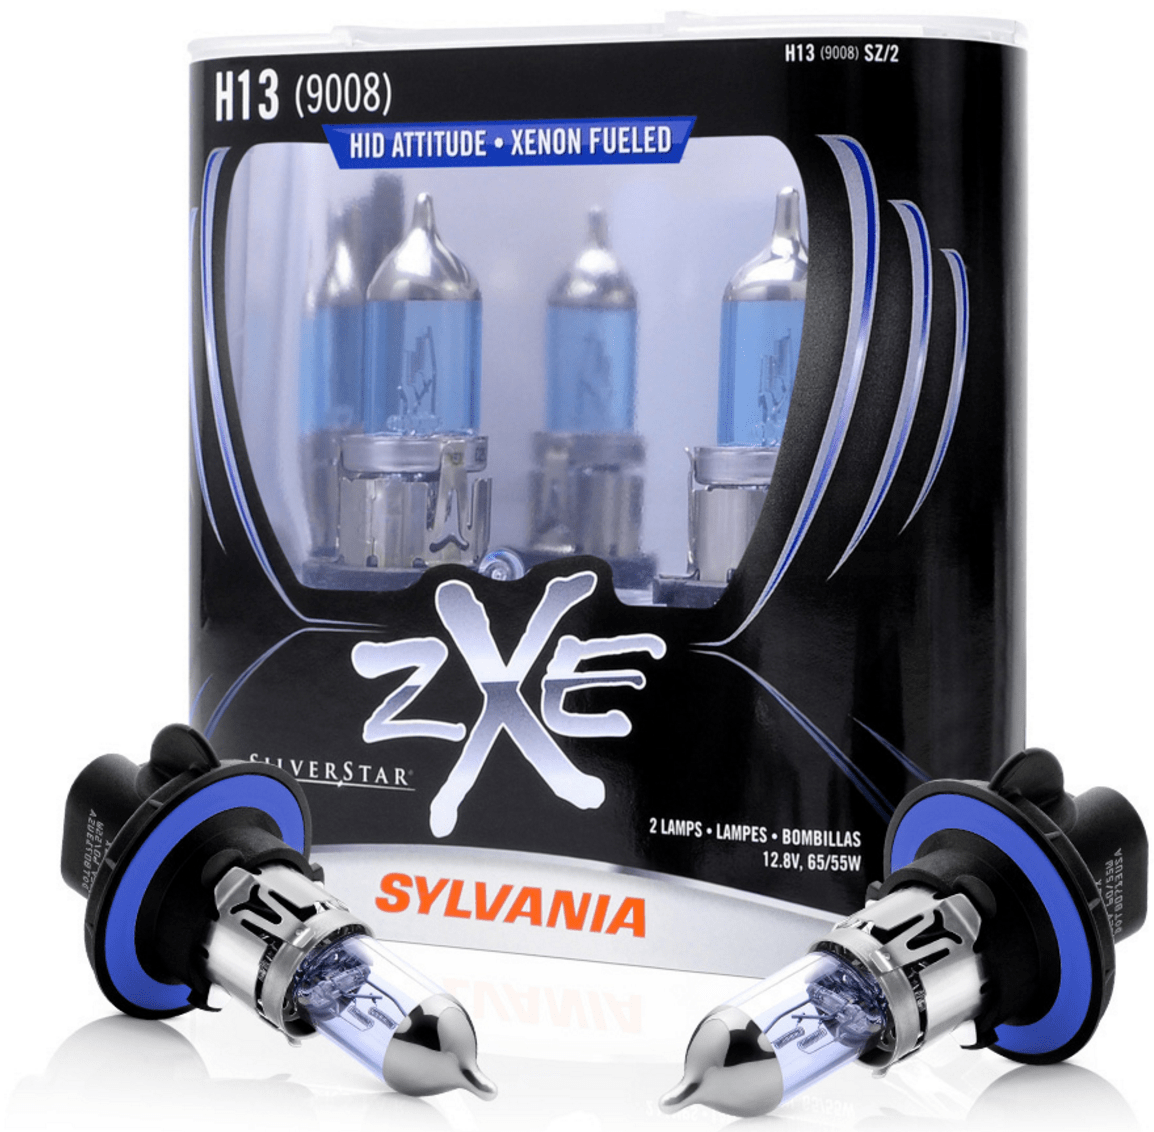 Sylvania Silverstar Zxe Headlight Review Best Bulbs 9003 H4 Wiring Diagram